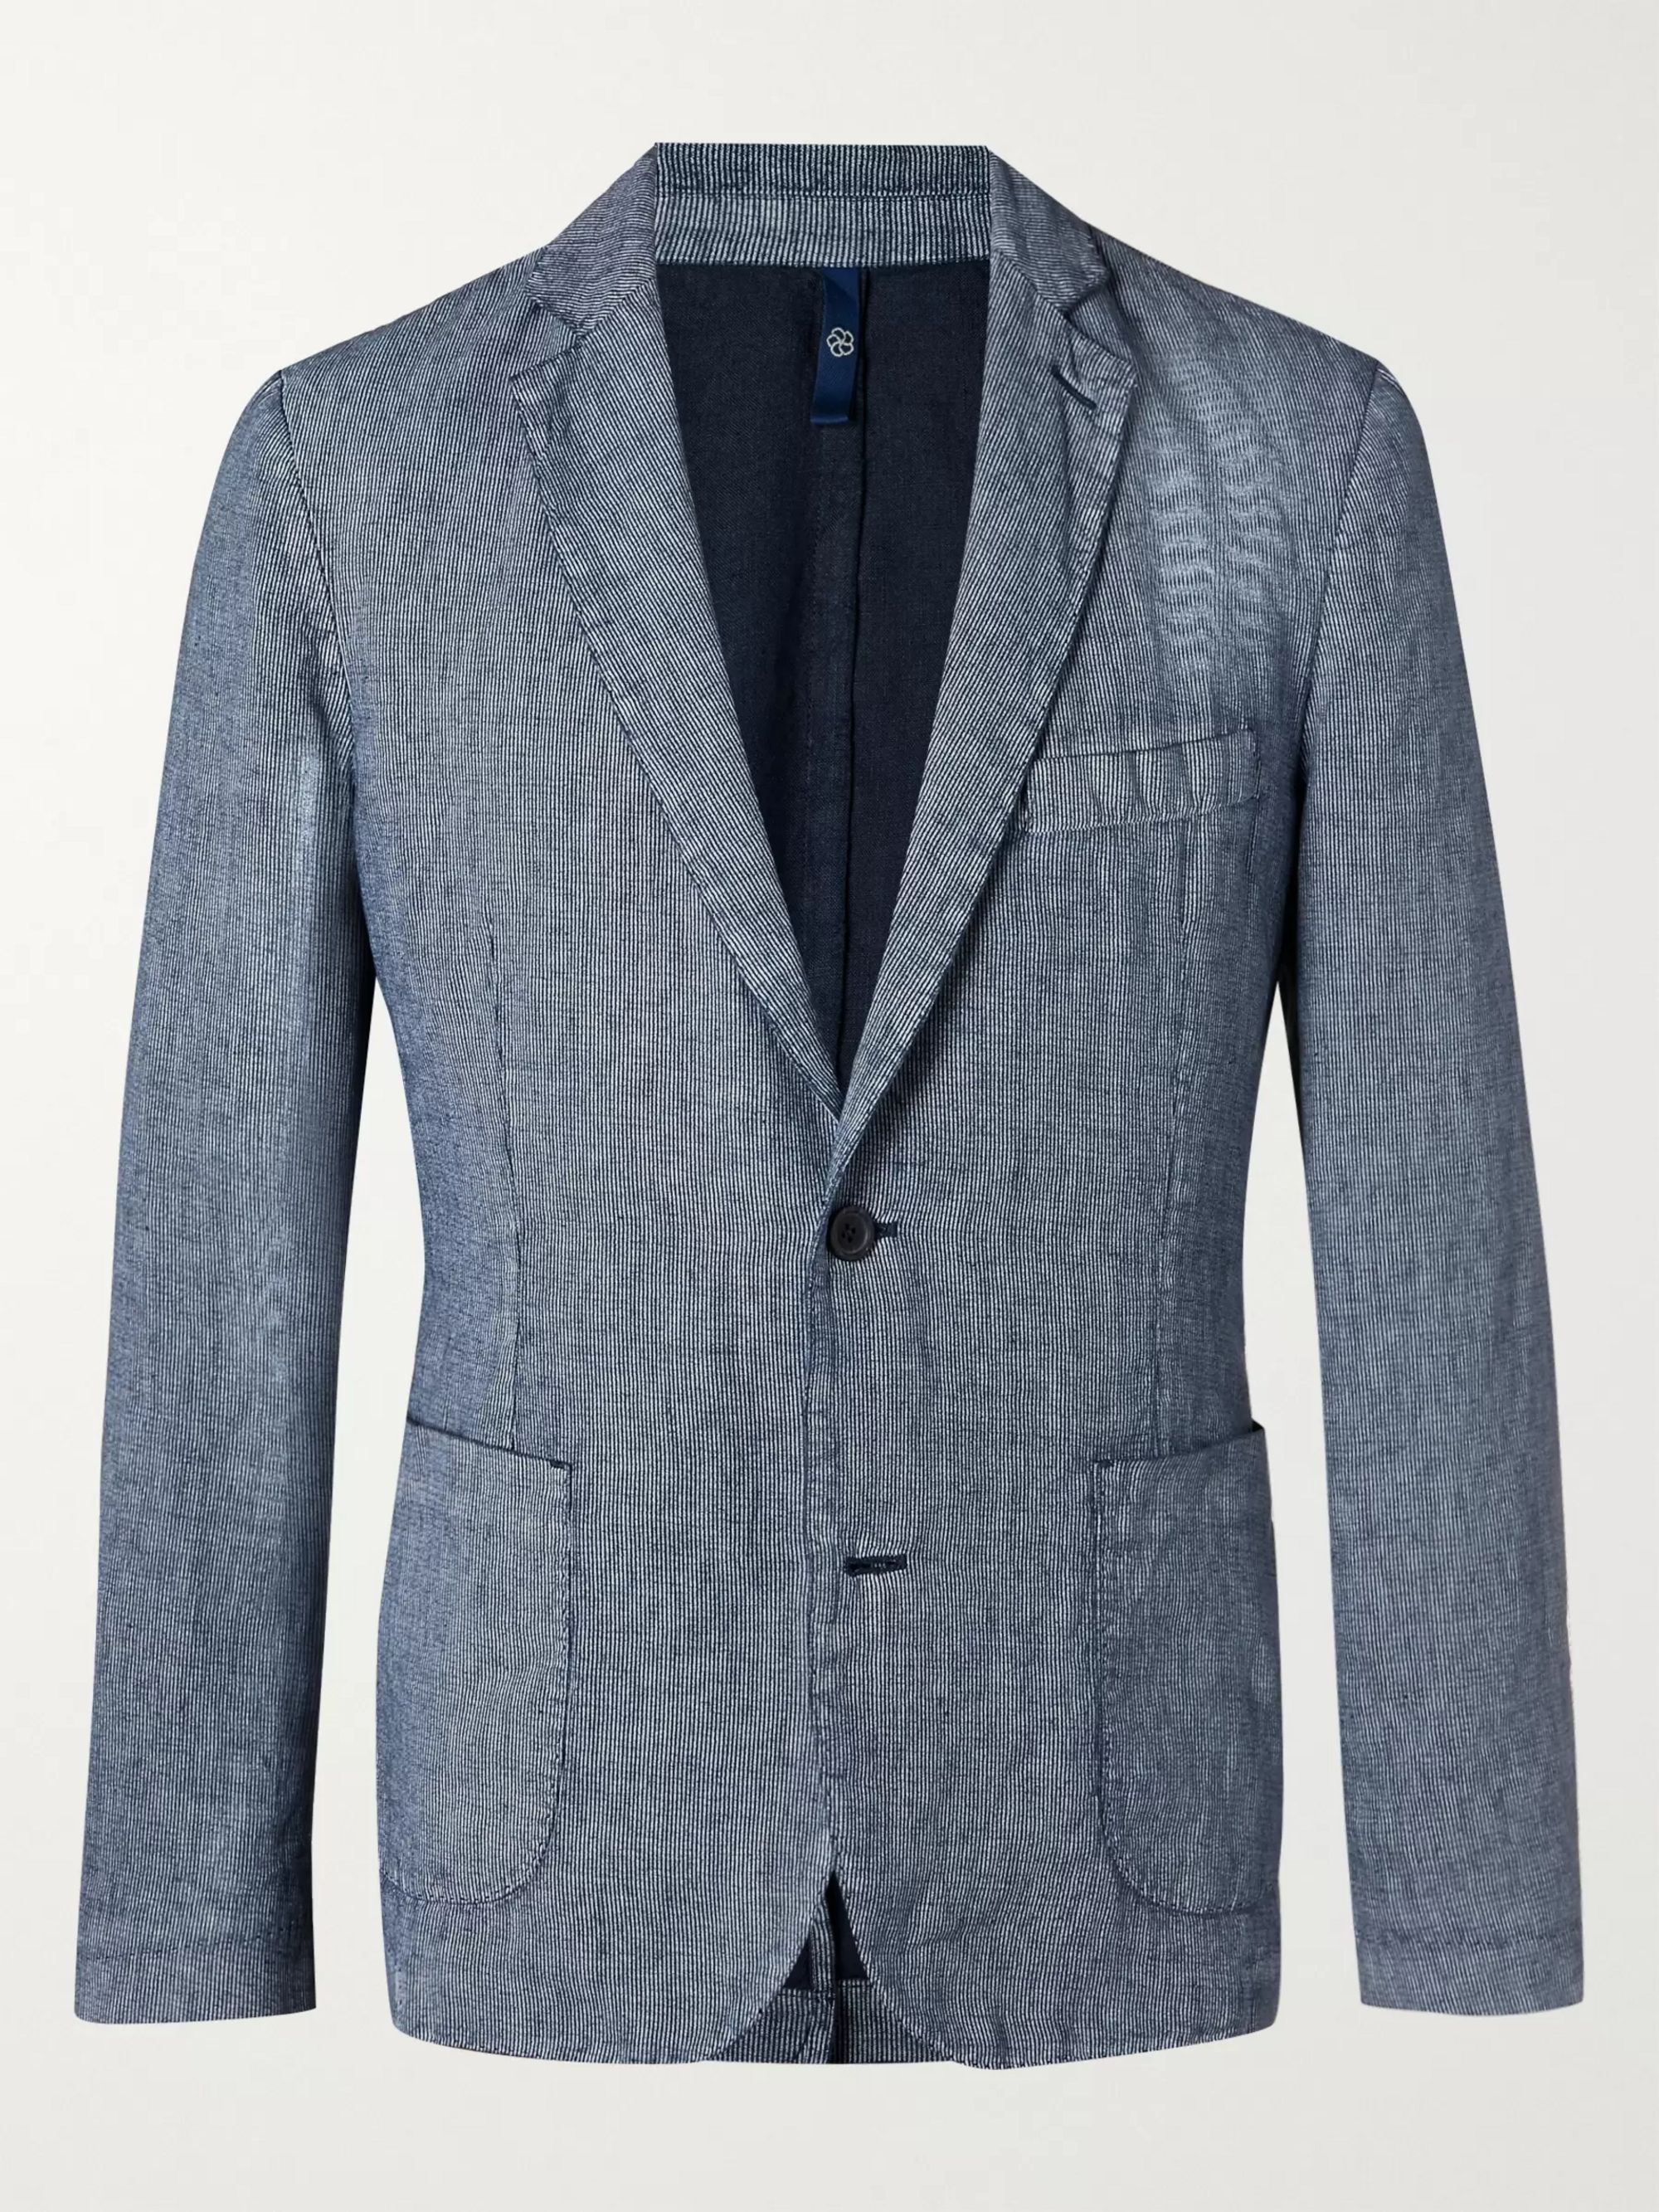 120% Unstructured Pinstriped Linen Blazer